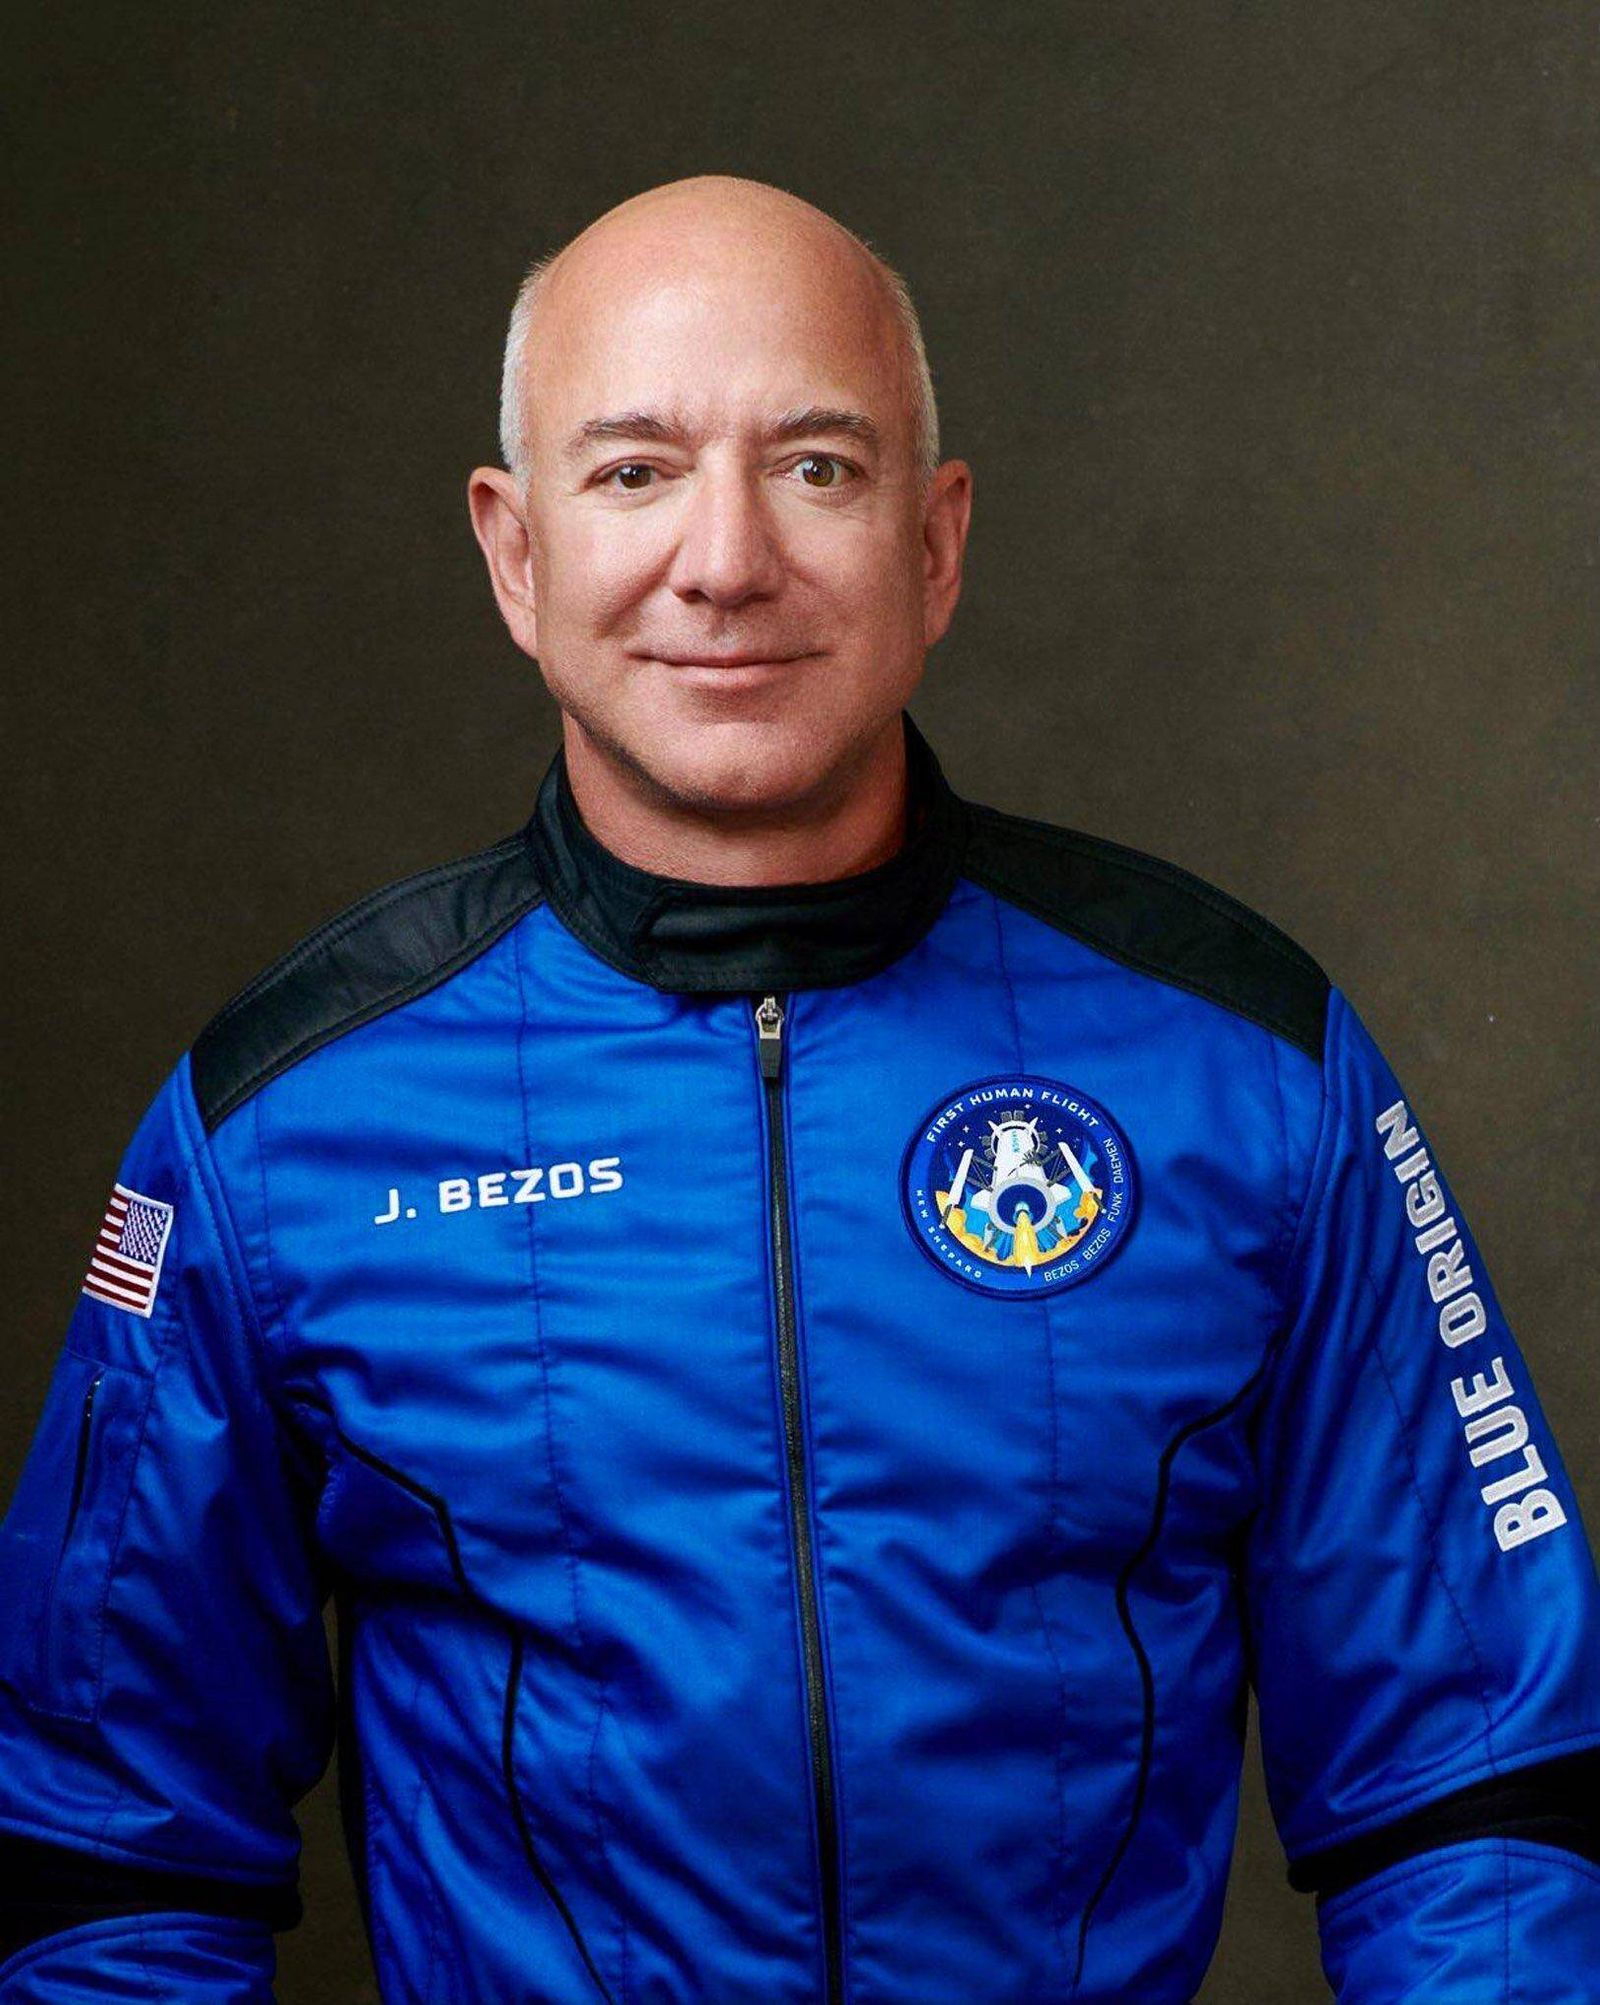 Amazon founder Jeff Bezos will be accompanied on the Blue Origin journey by his brother, Mark Bezos, as well as the old